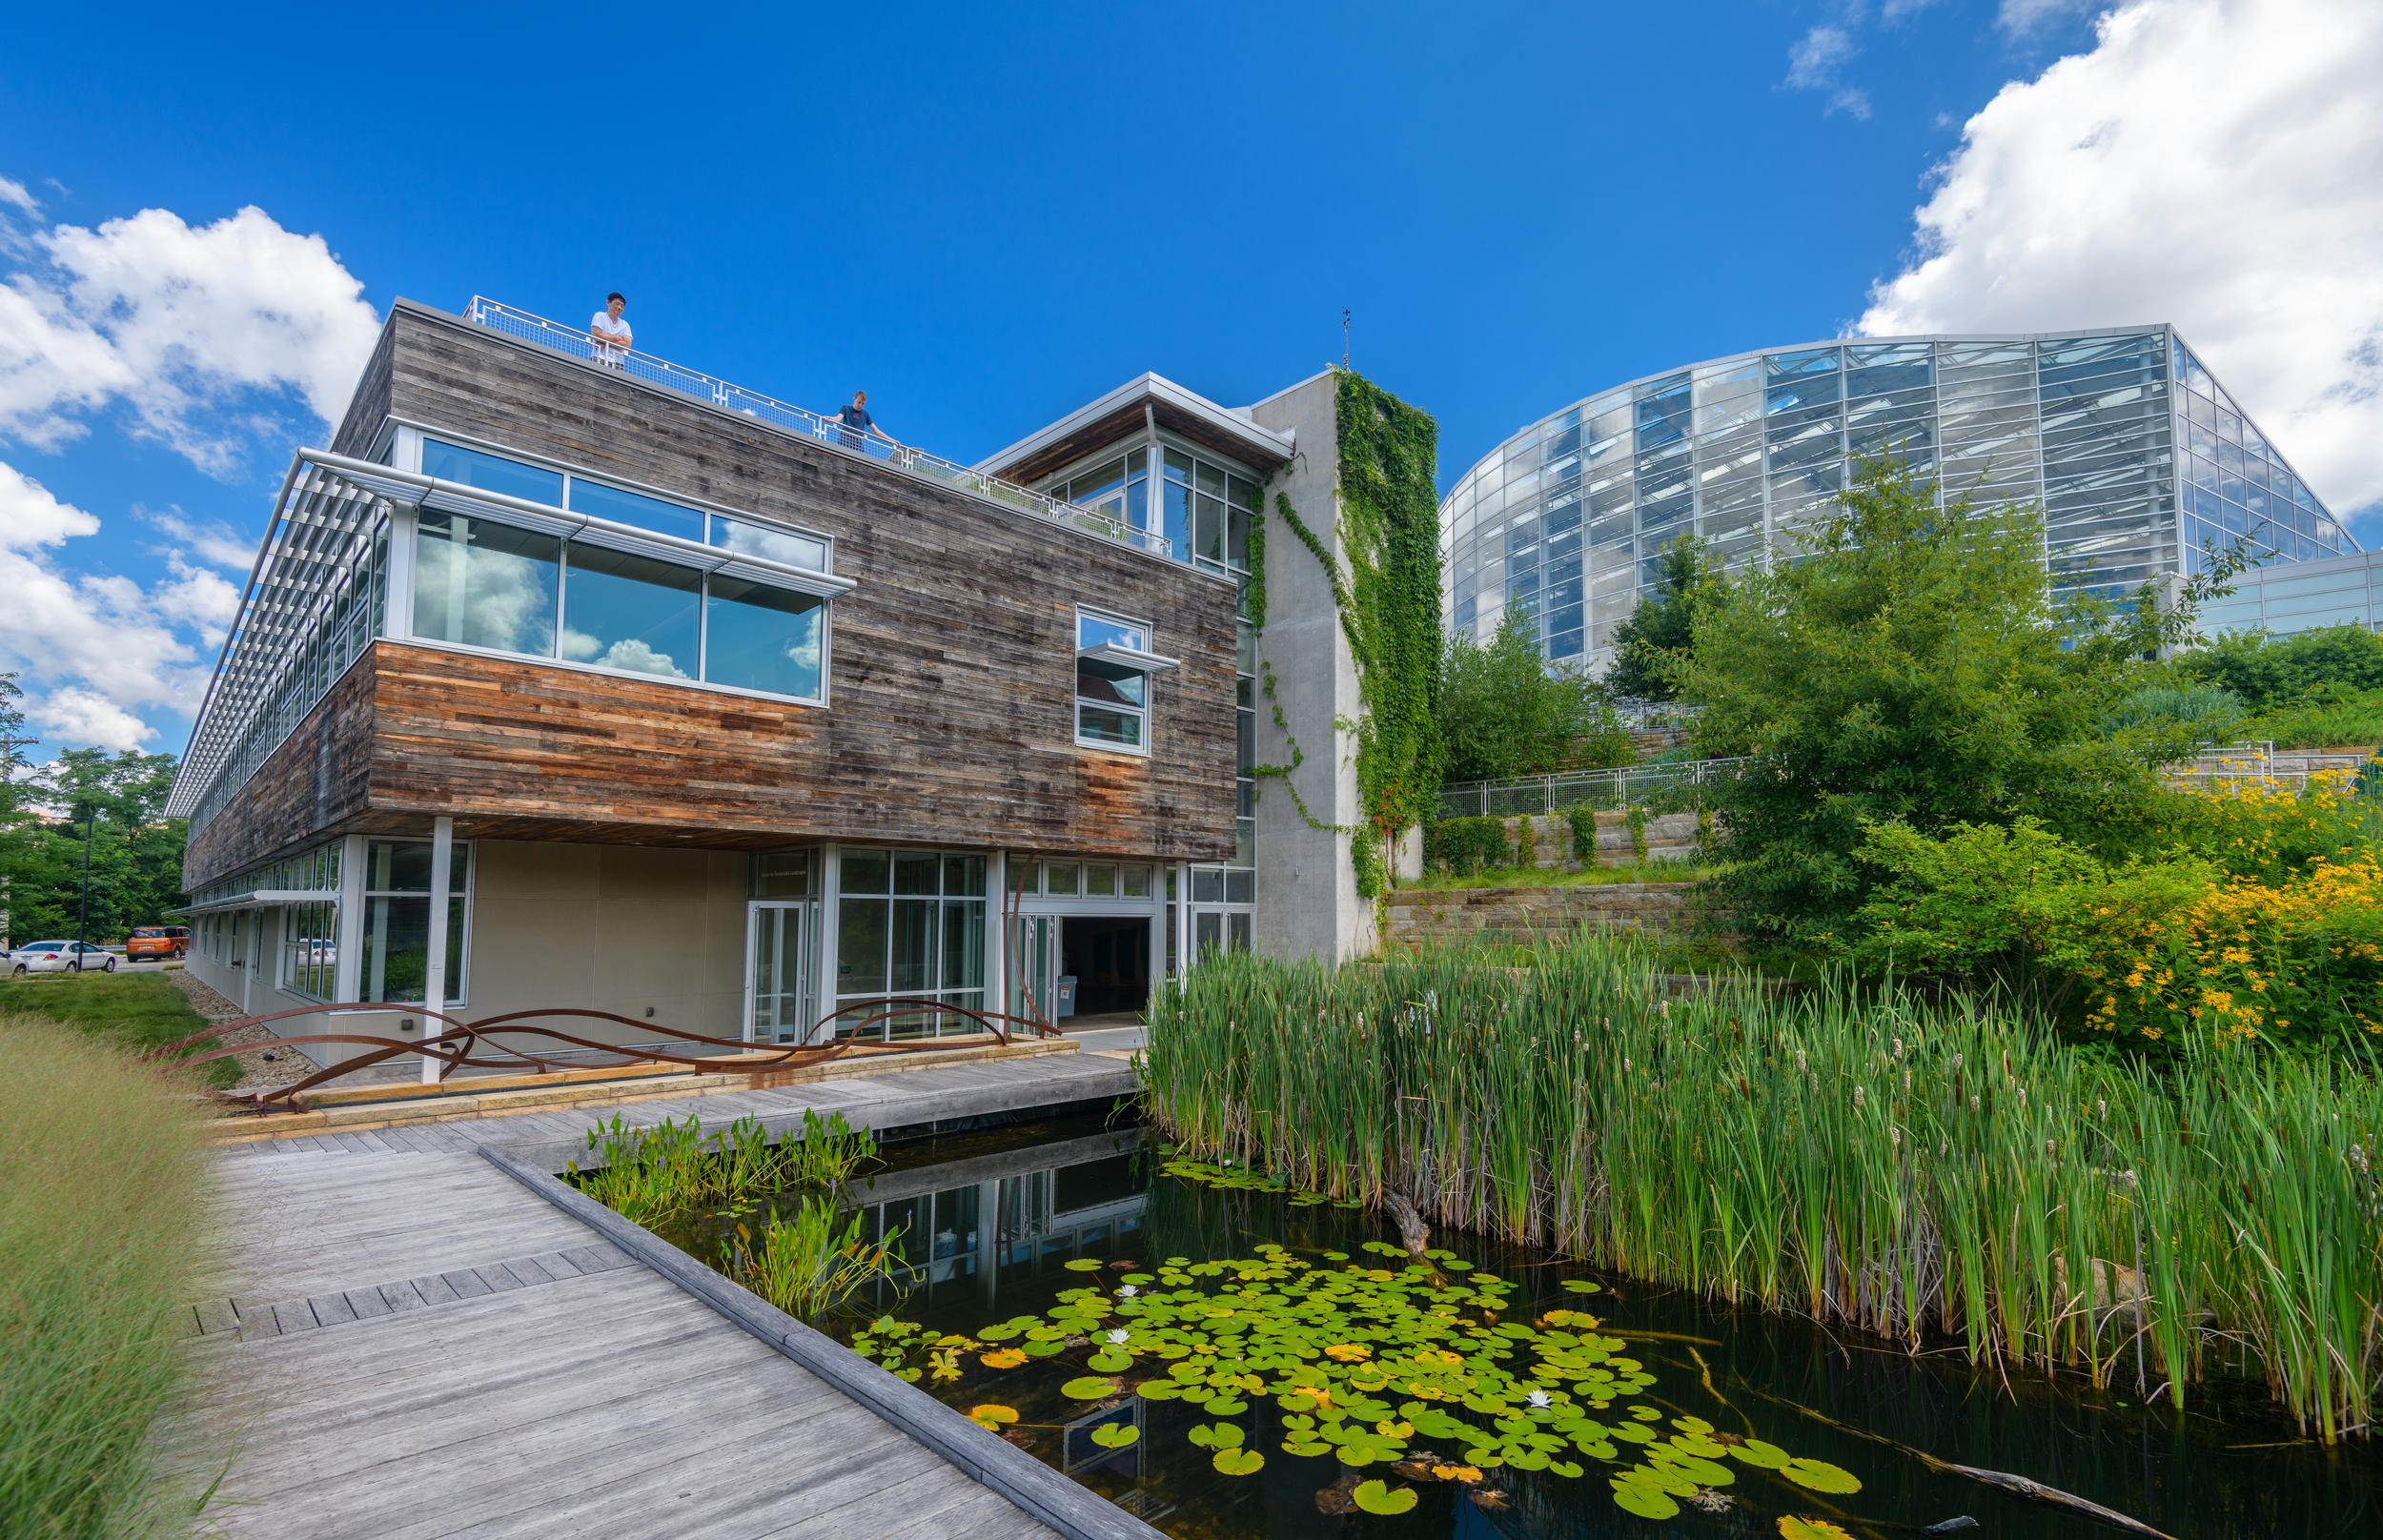 Against a bright blue sky, a glass and wood building abuts greenery and natural features, including a lily pond with a wooden walkway surrounding it.